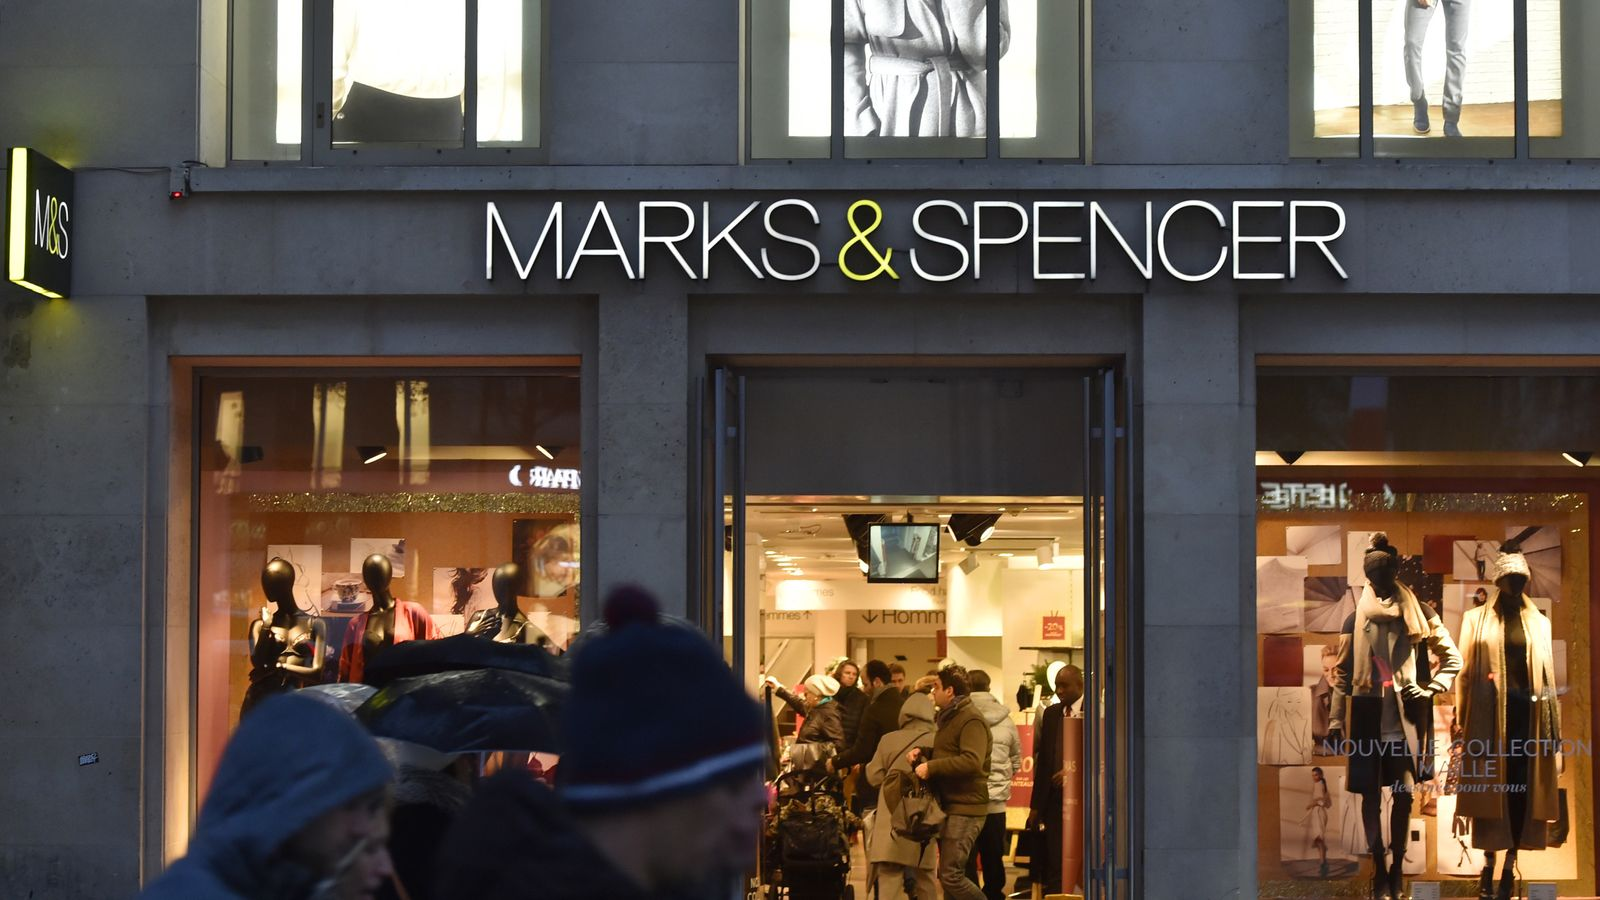 Drop in profits for Marks & Spencer amid sales dip in clothing arm